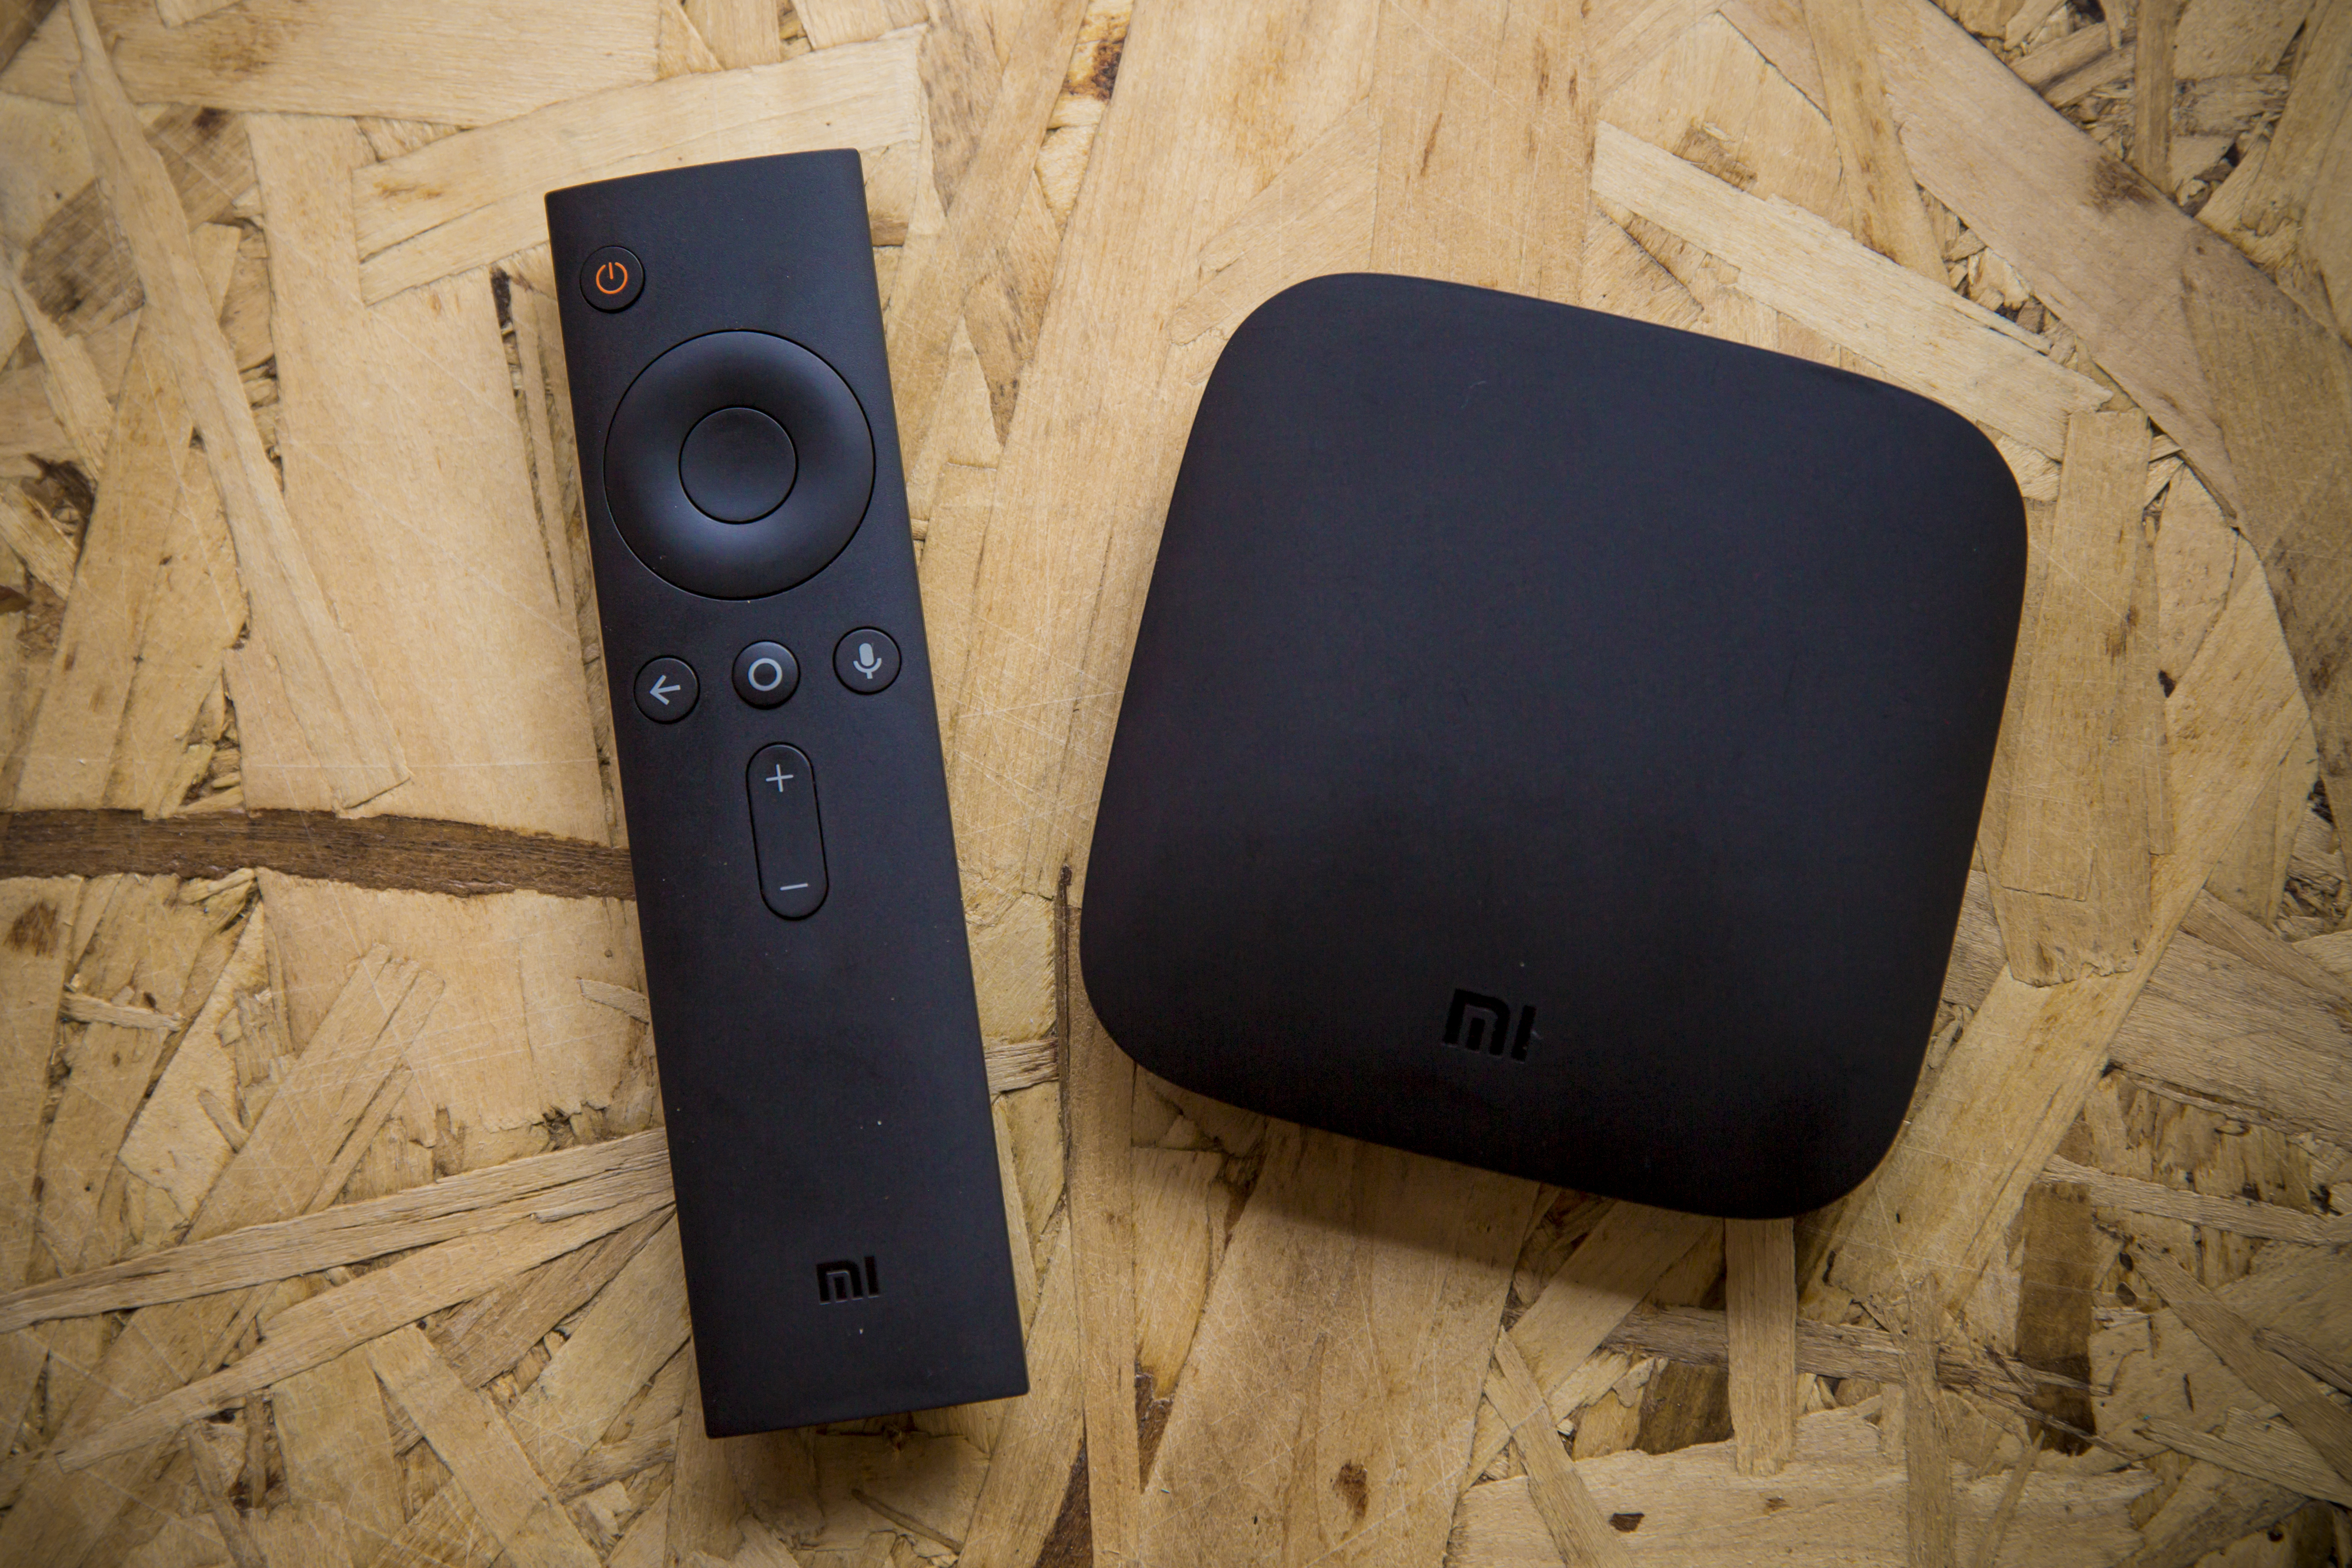 google-io-2016-xiaomi-mi-set-top-android-tv-box-8632.jpg